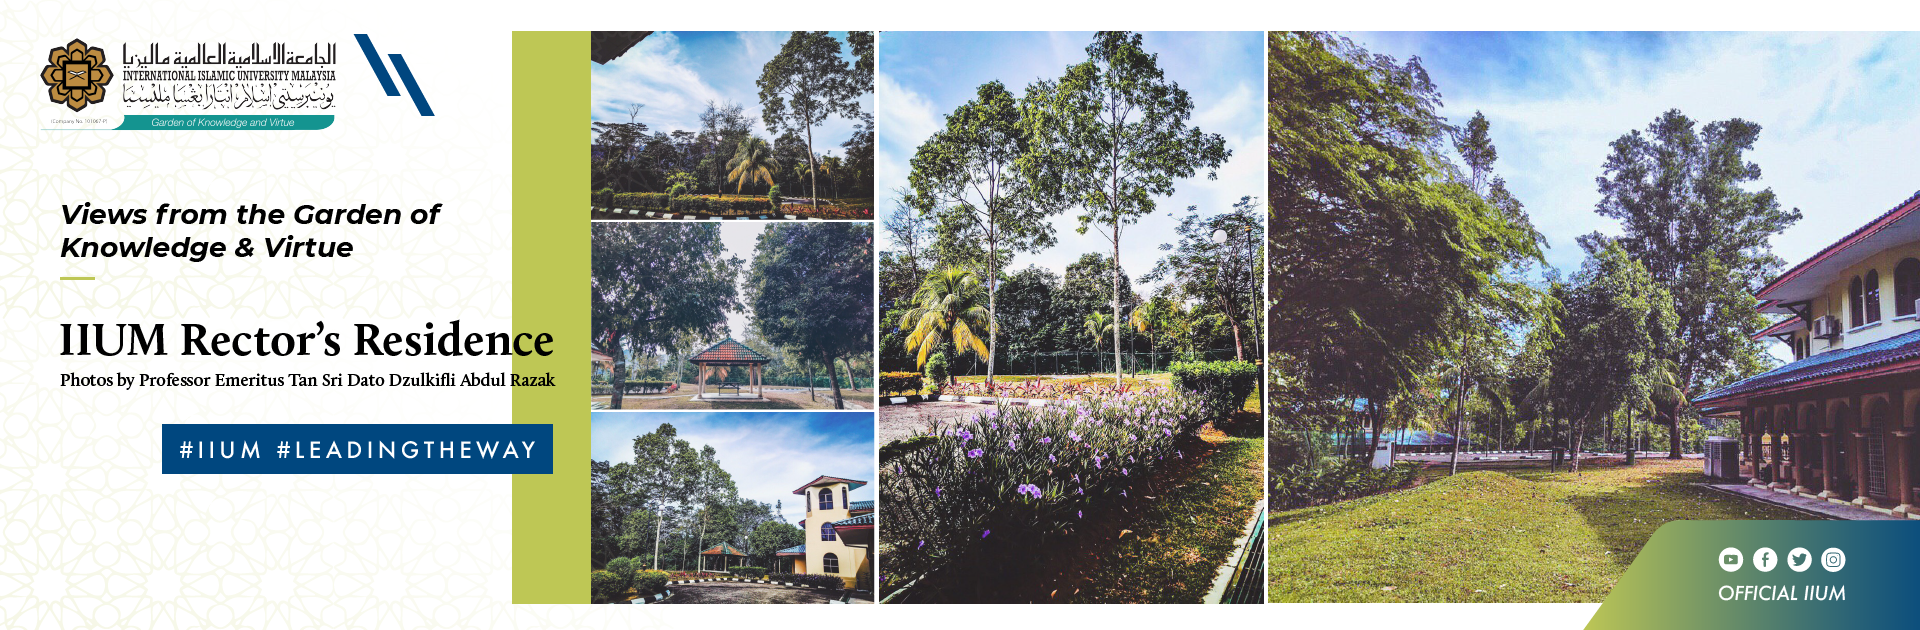 Views from The Garden of Knowledge and Virtue - IIUM Rector's Residency